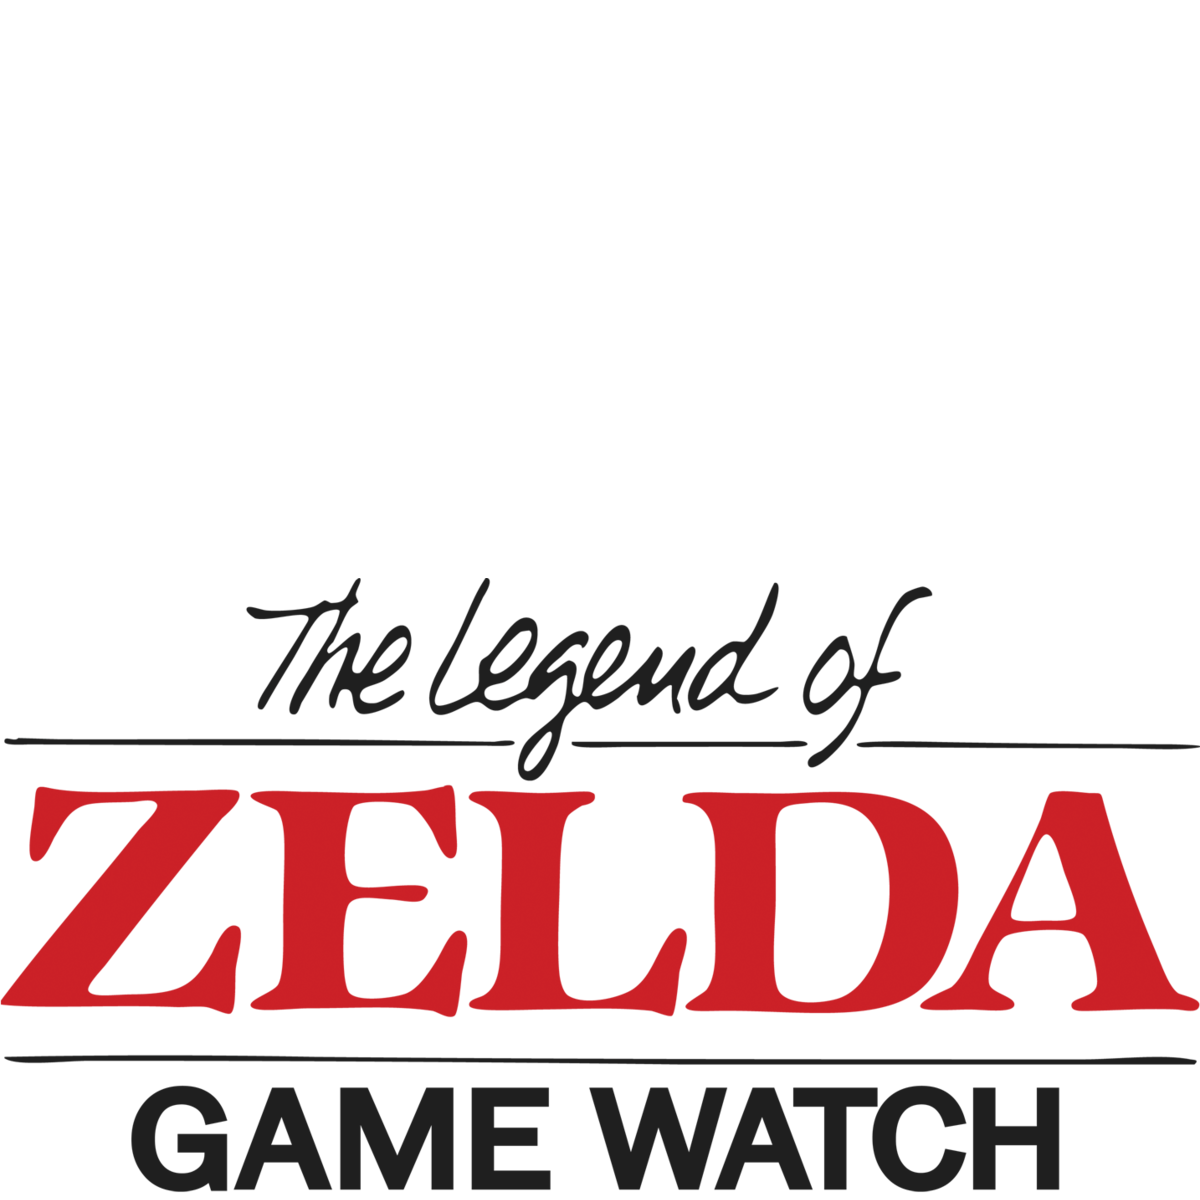 Logo du jeu Zelda Watch